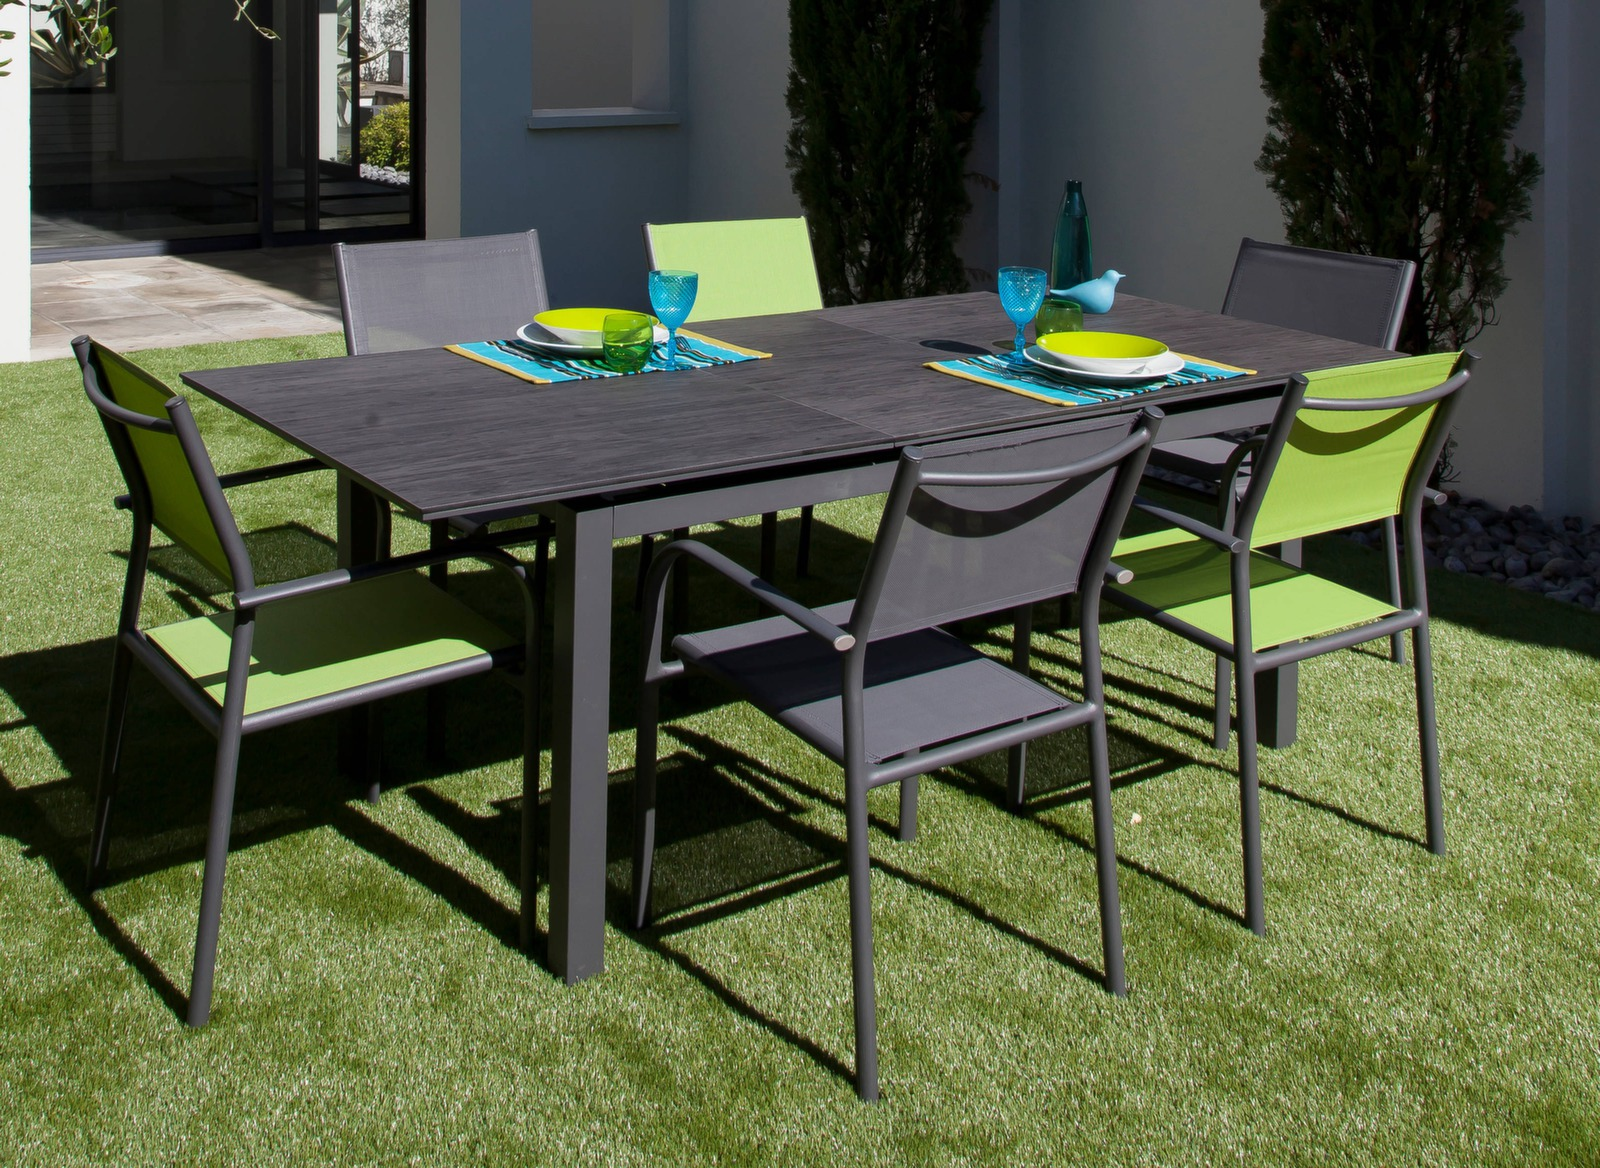 Cote table vente en ligne maison design for Vente table jardin